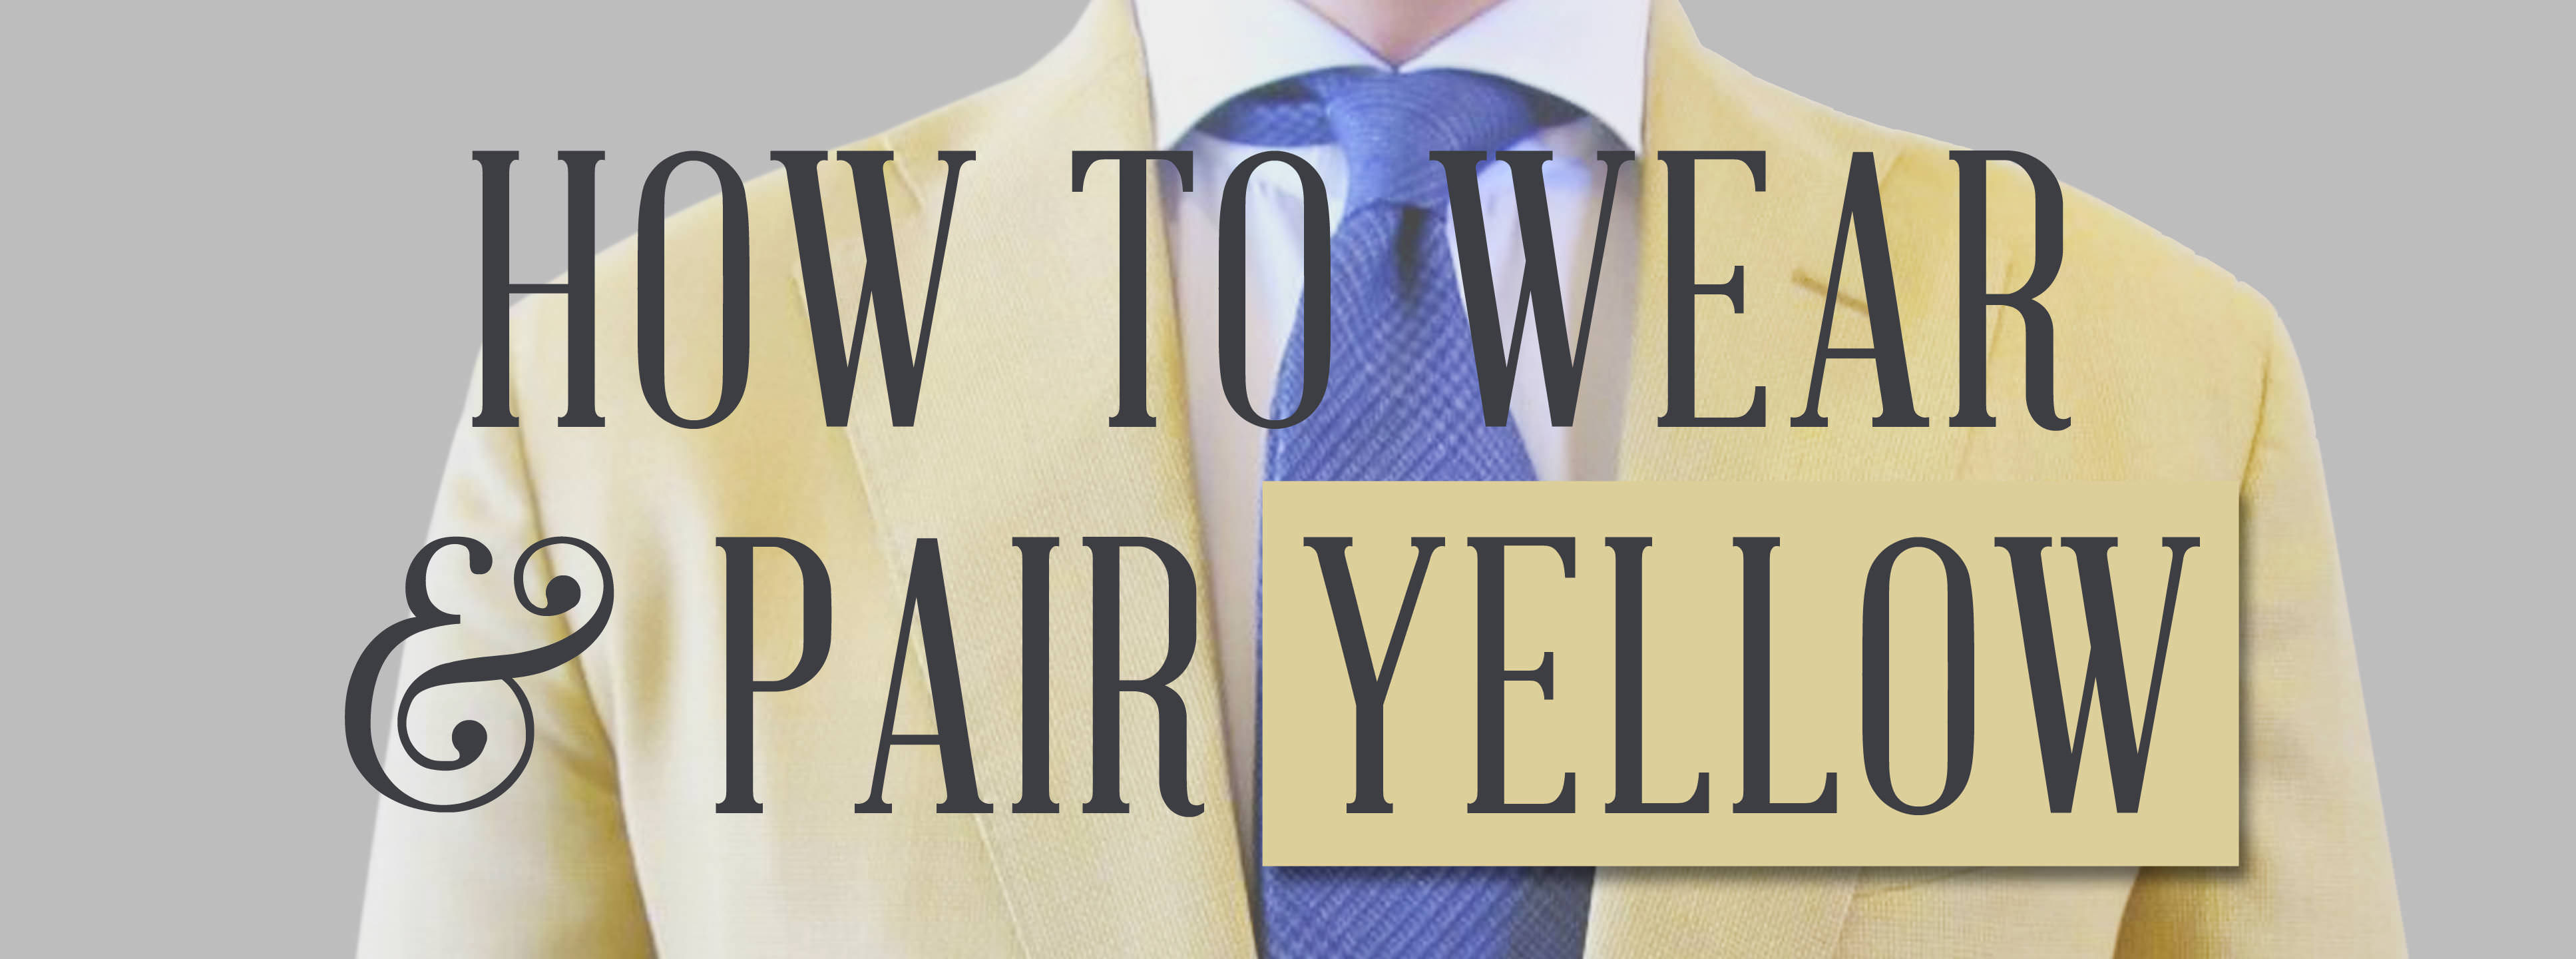 895949cae262 How to Wear Yellow as a Menswear Color — Gentleman's Gazette